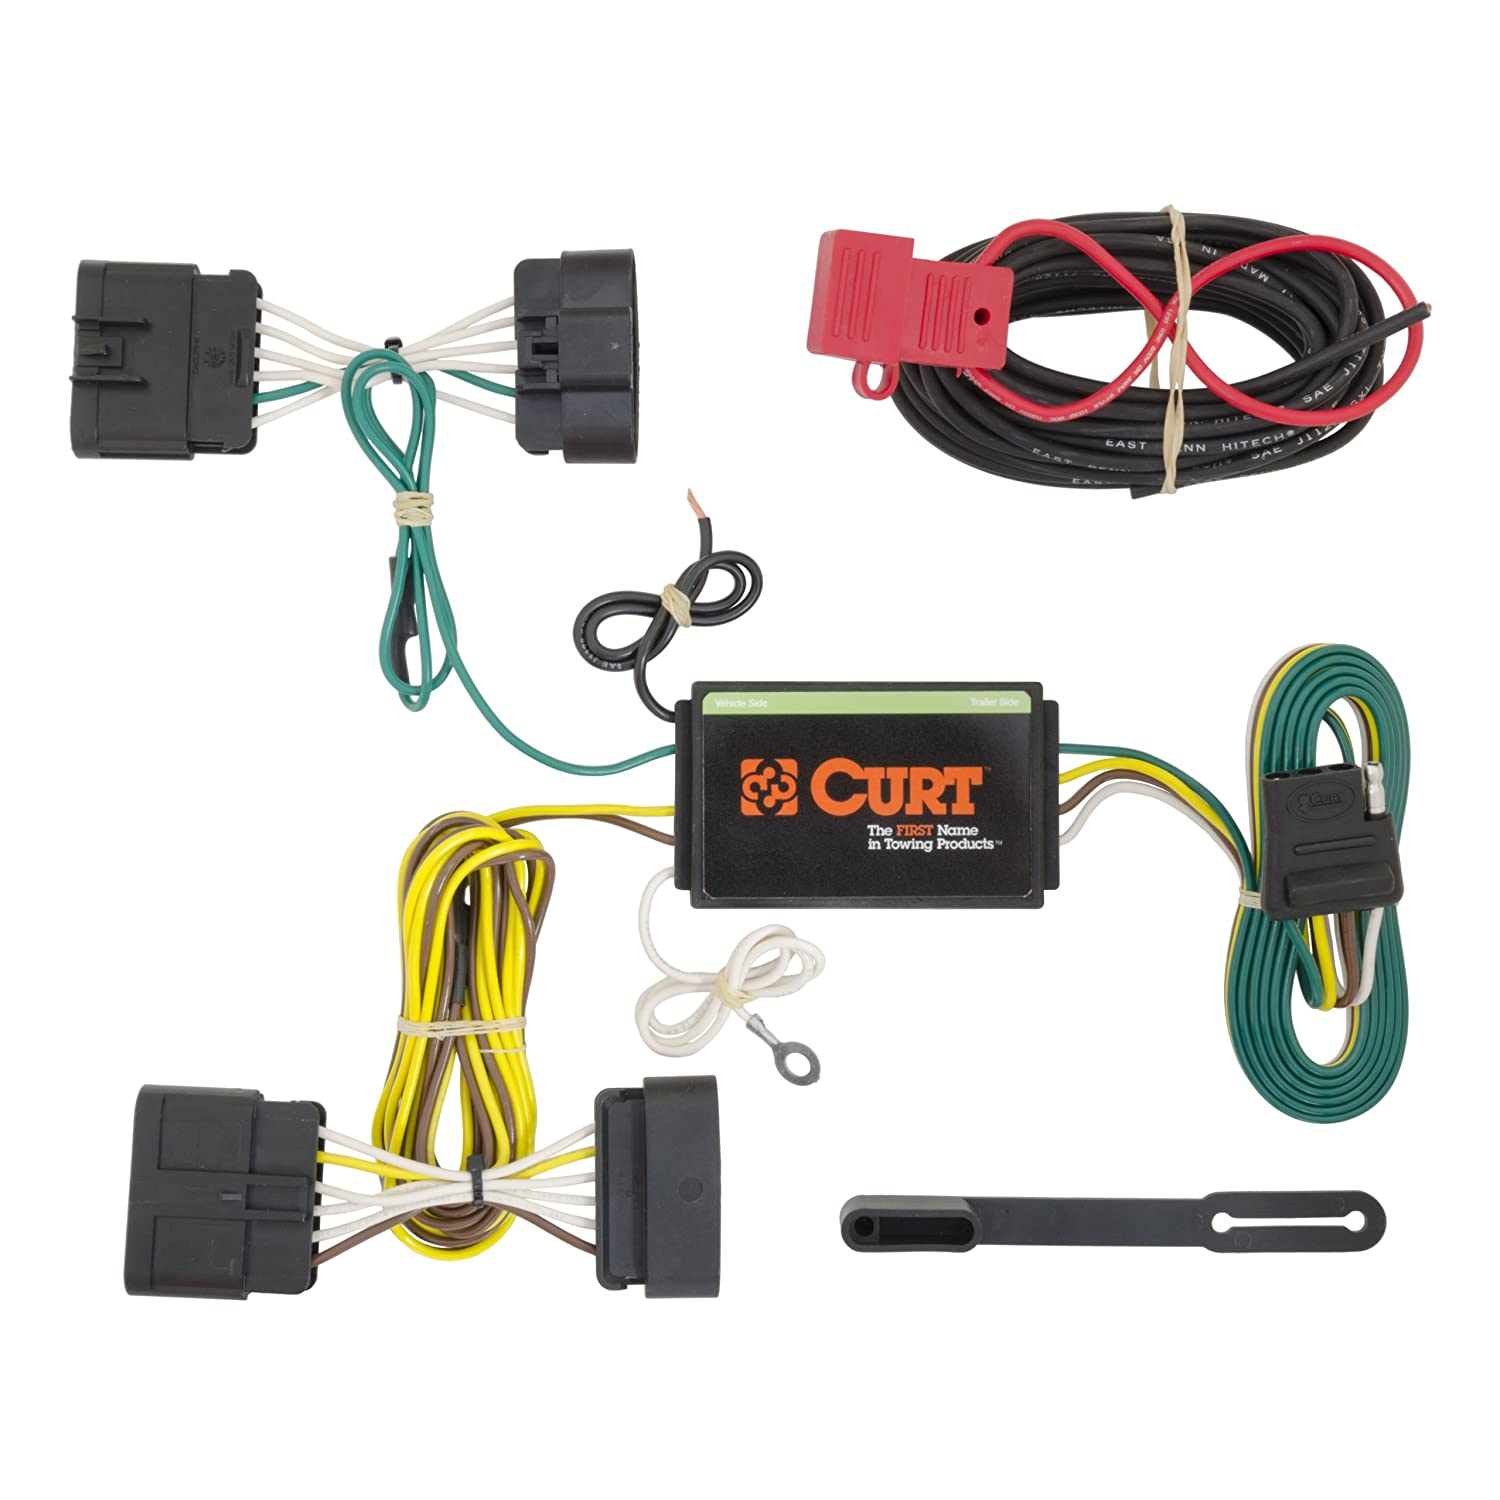 amazon com curt 56198 custom wiring harness automotive rh amazon com curt trailer wiring harness#c55382 curt trailer wiring harness video 56033